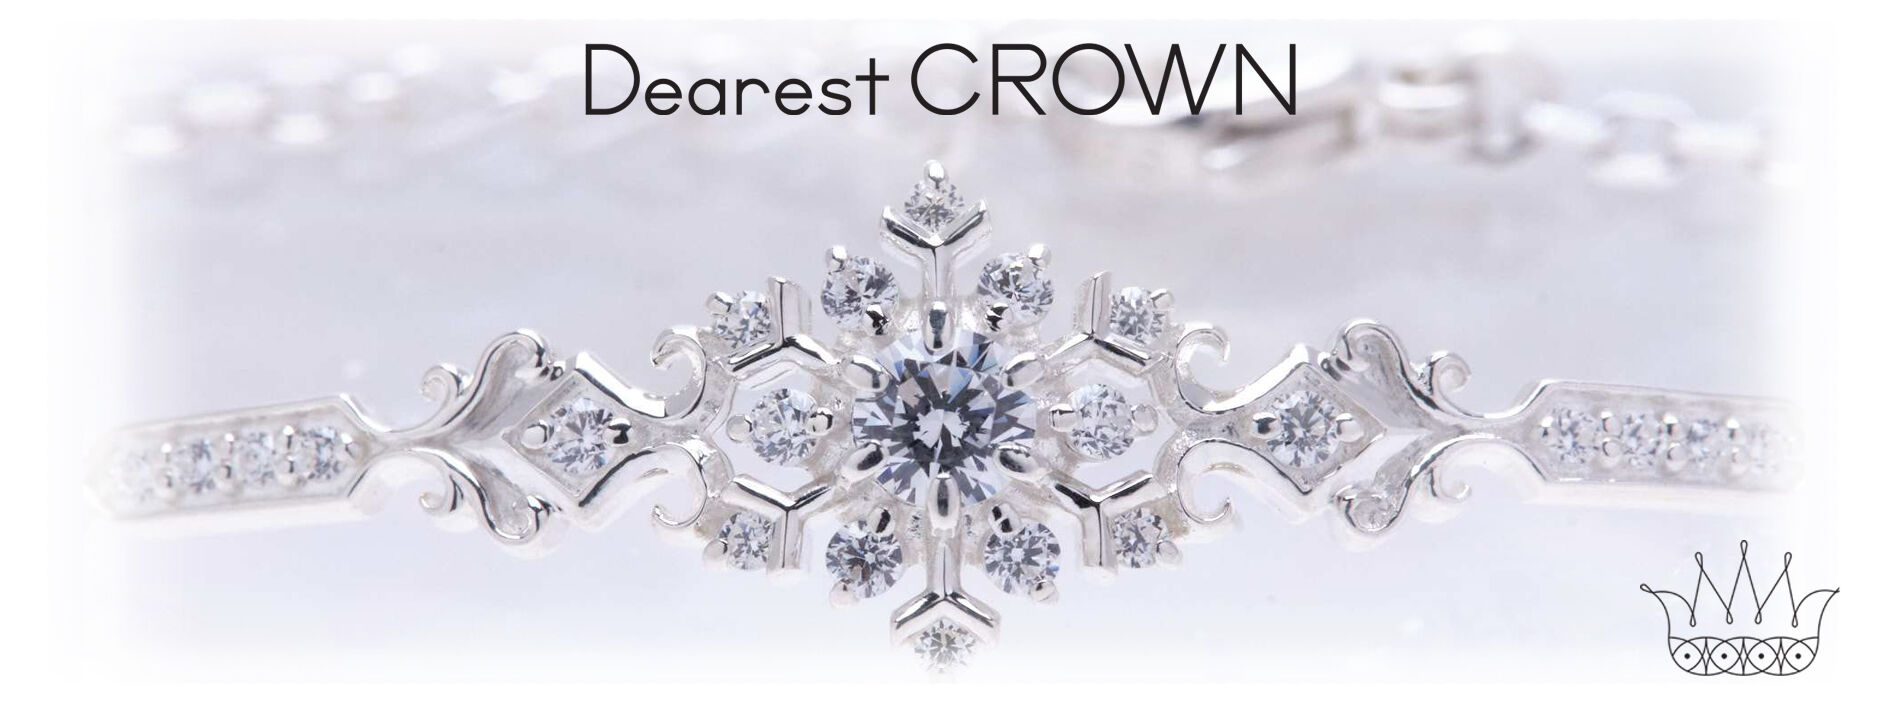 Dearest CROWN